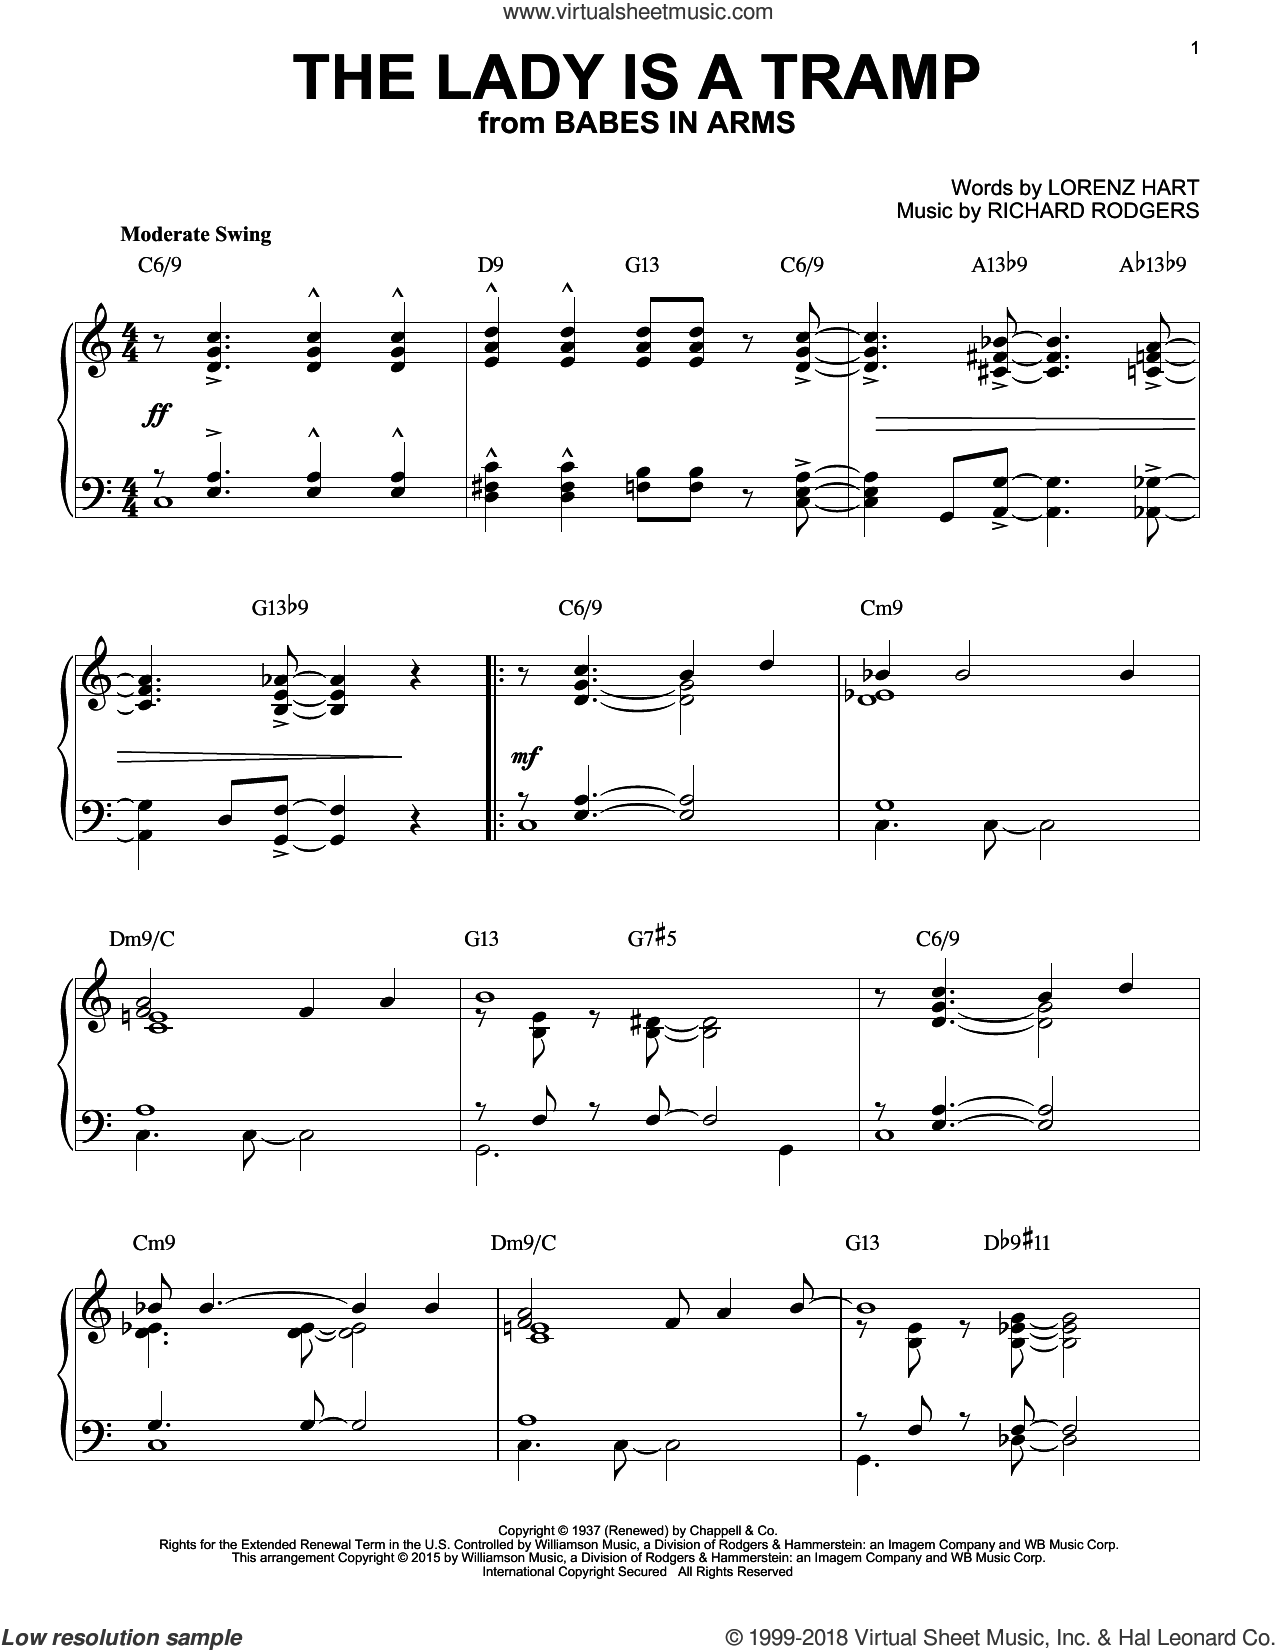 The Lady Is A Tramp [Jazz version] (arr. Brent Edstrom) sheet music for piano solo by Rodgers & Hart, Lorenz Hart and Richard Rodgers, intermediate skill level